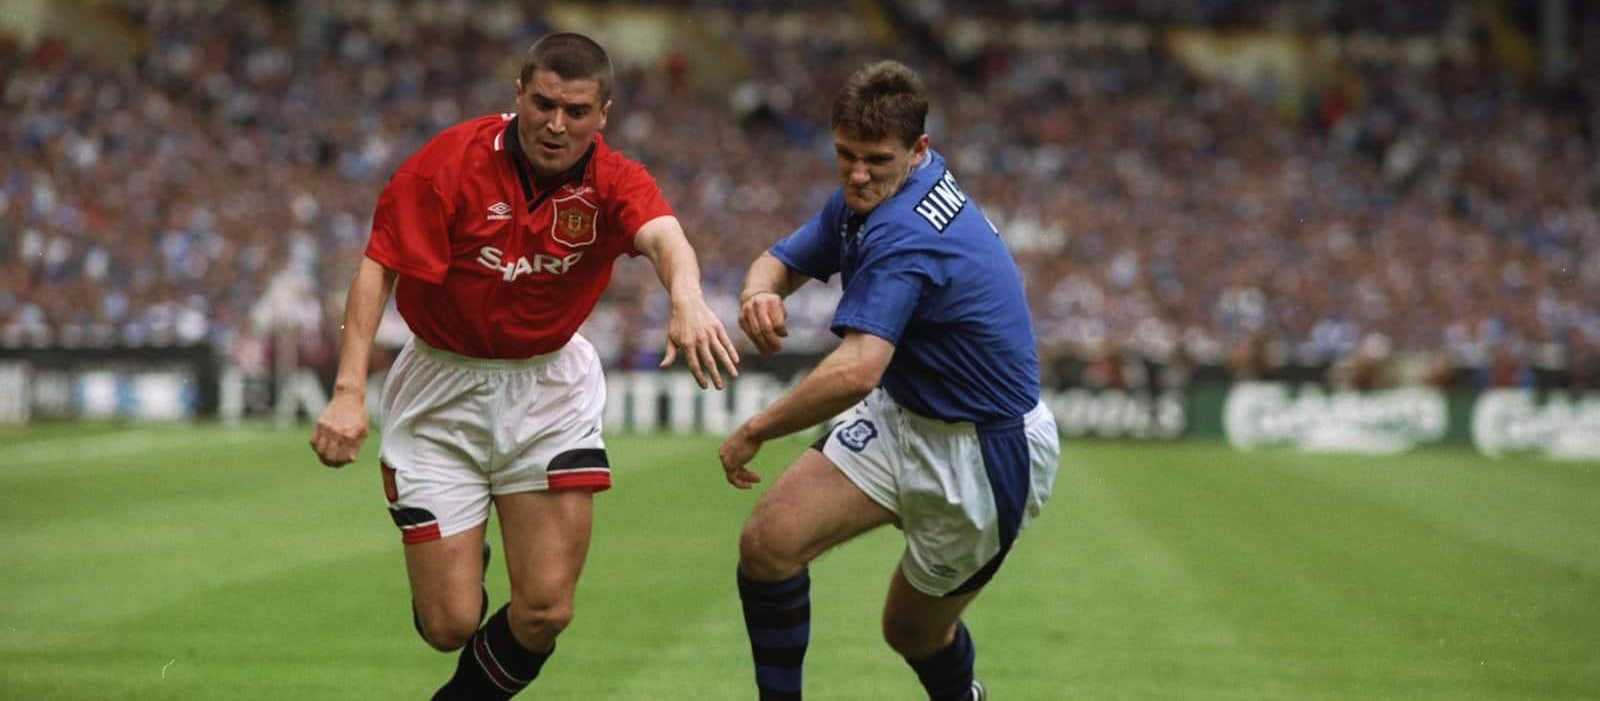 FA Cup Final Series 1994/5: Manchester United 0-1 Everton